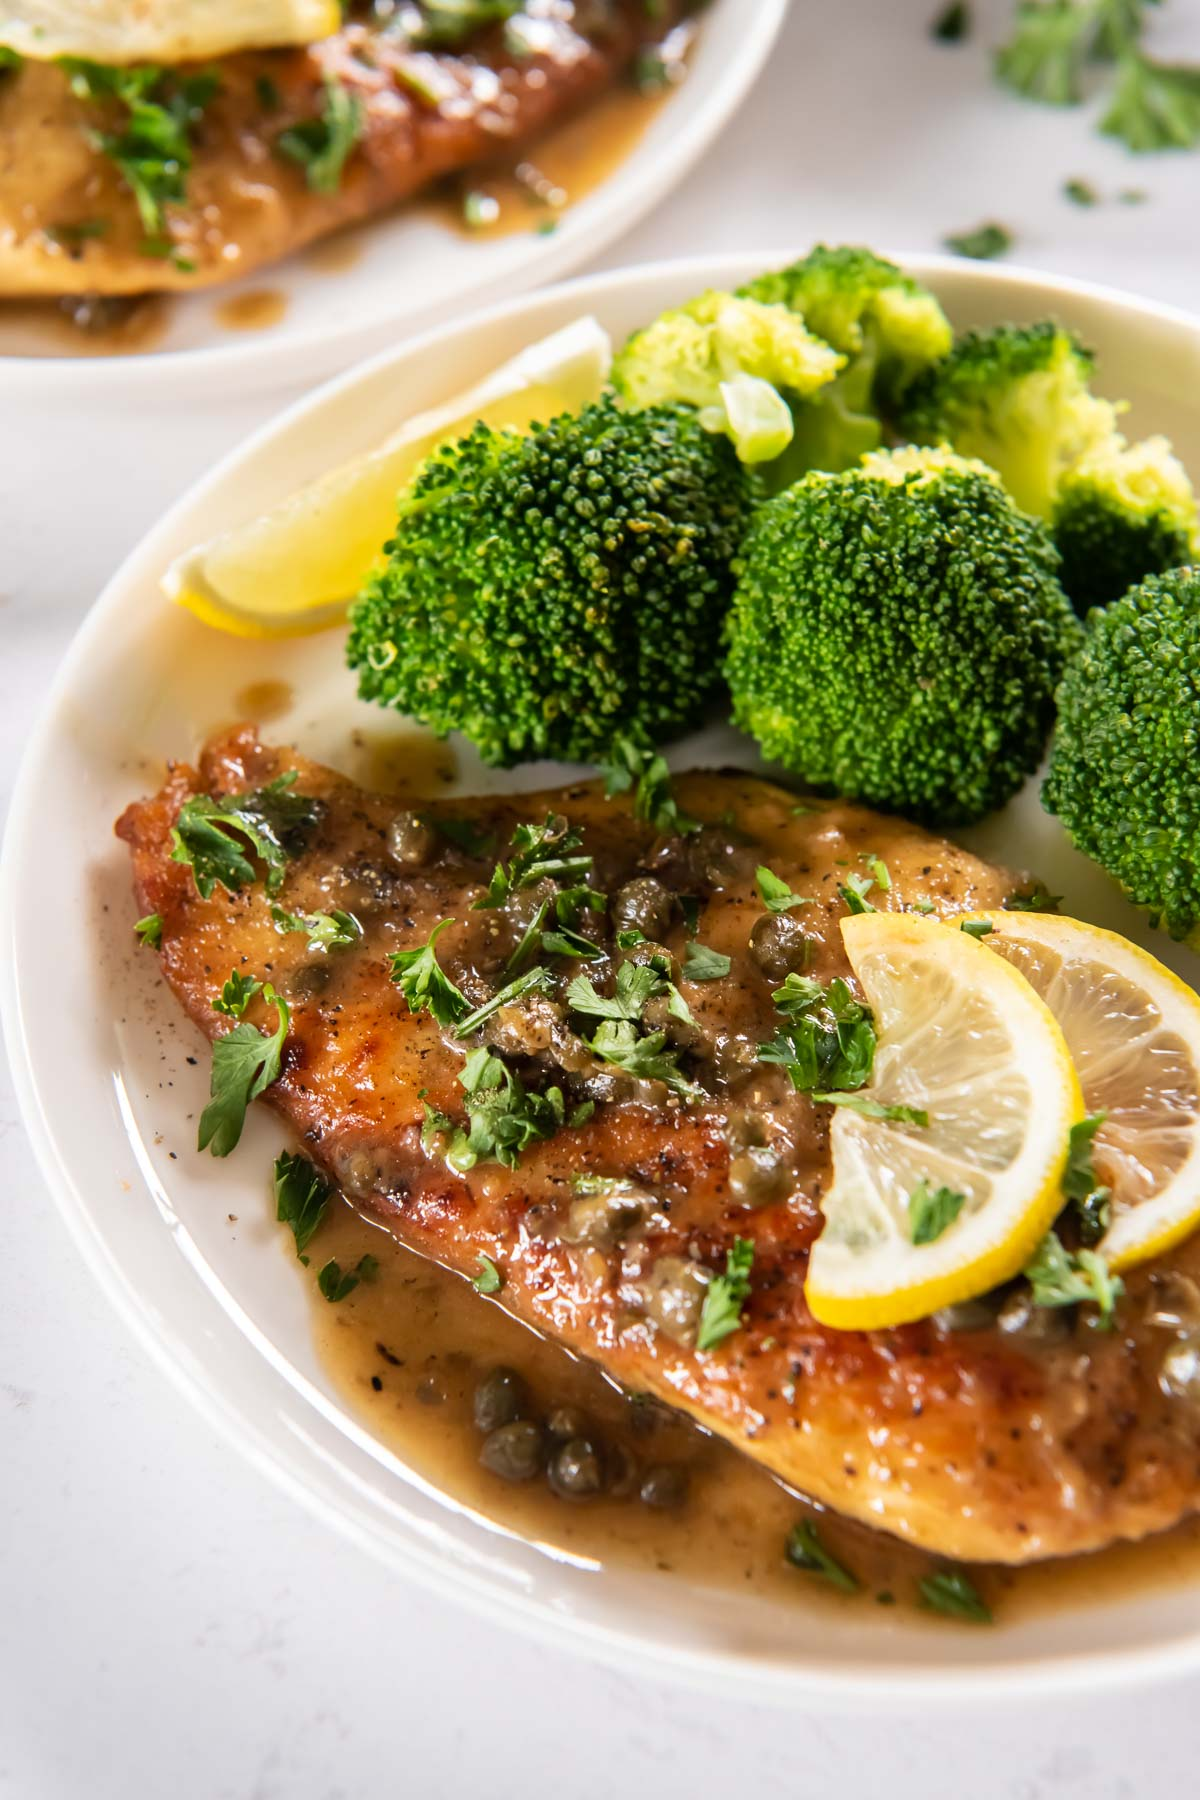 chicken piccata on a plate served with steamed broccoli